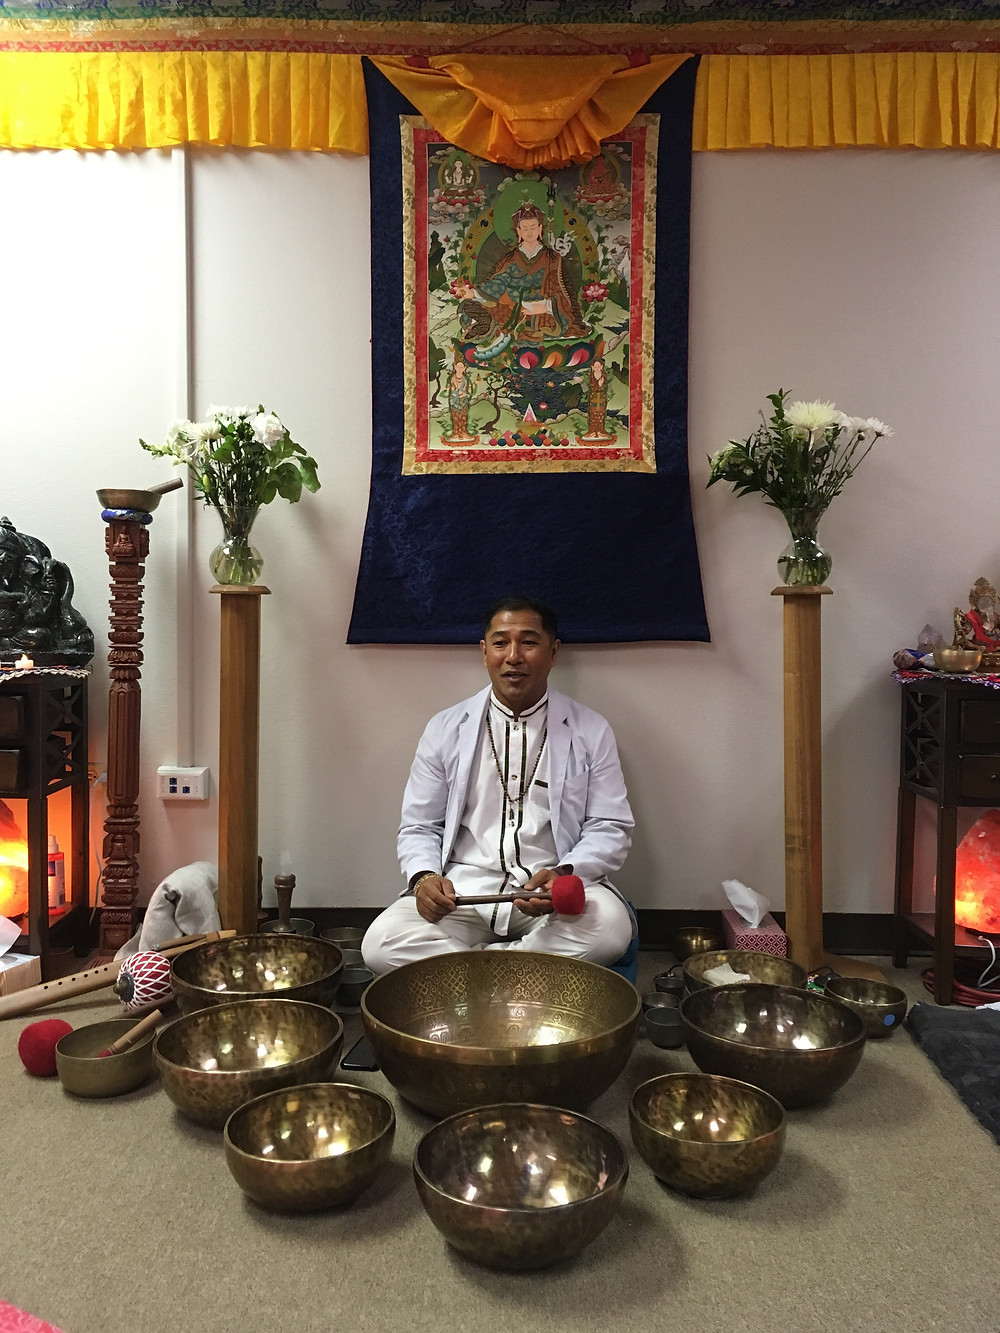 Suren Shrestha discusses Traditional Healing Methods with Singing Bowls